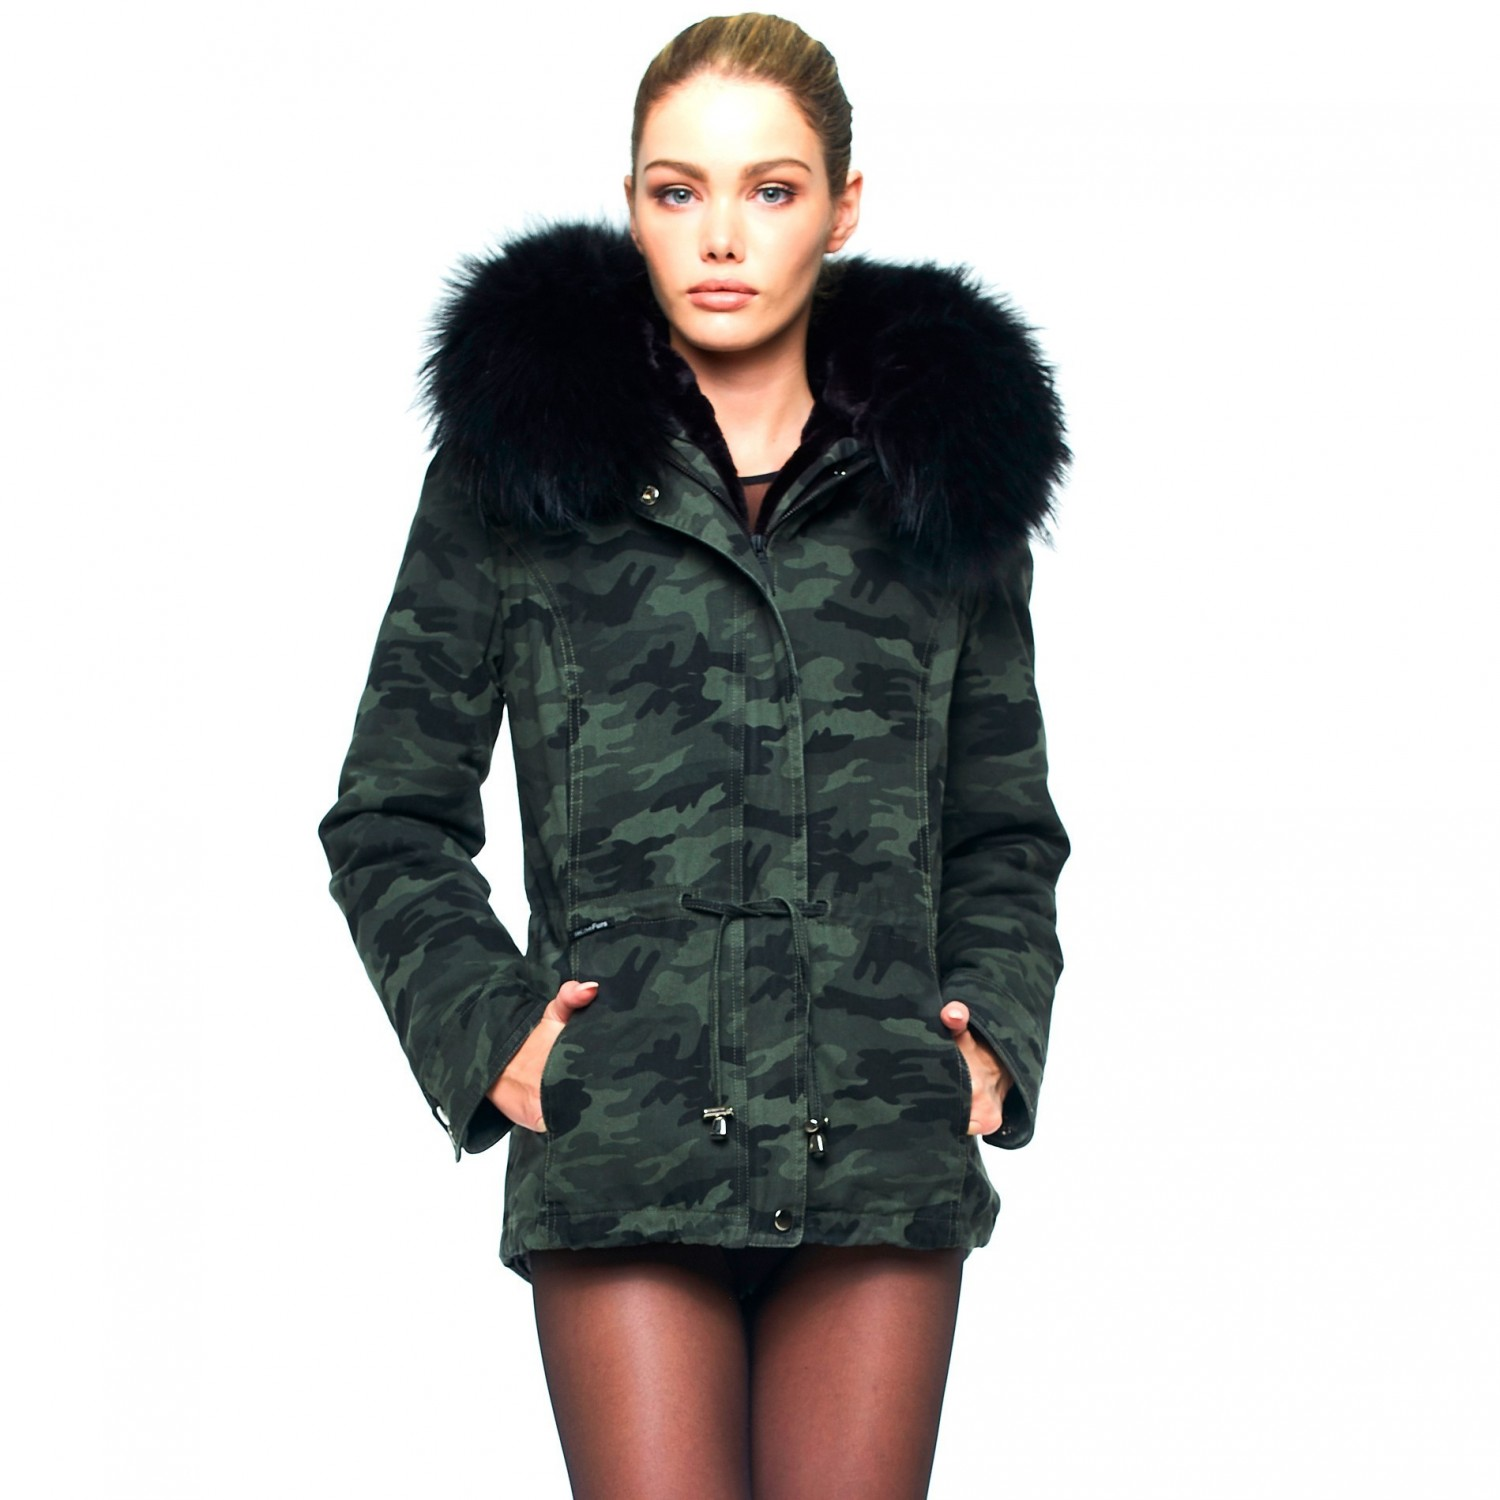 Camouflage Parka with Fur Collar 23